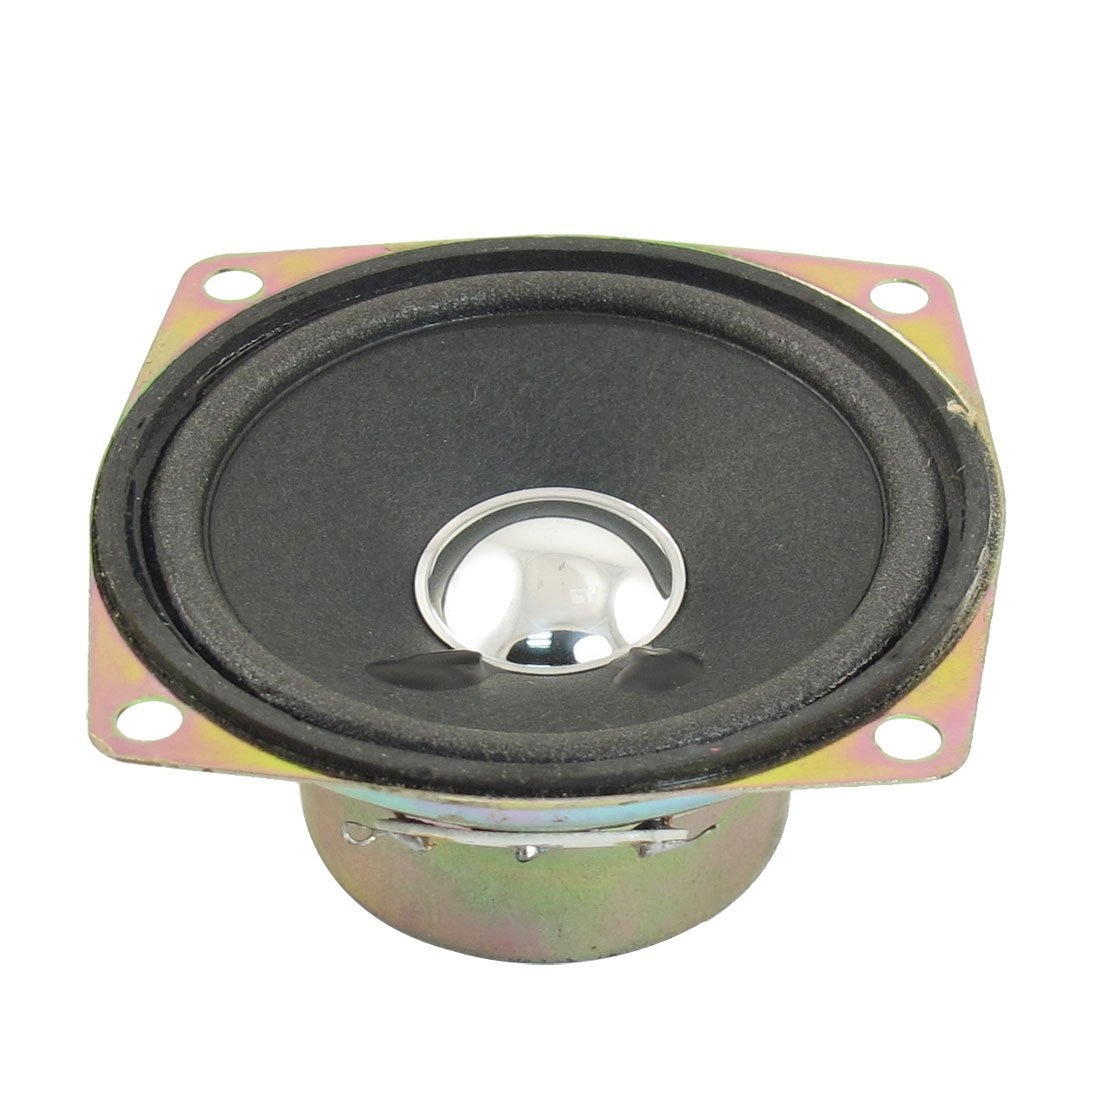 5W 5 Watt 8 Ohm Alluminio Rotondo Altoparlante Interno Magnete 38mmx64mm sourcing map a13010800ux0411